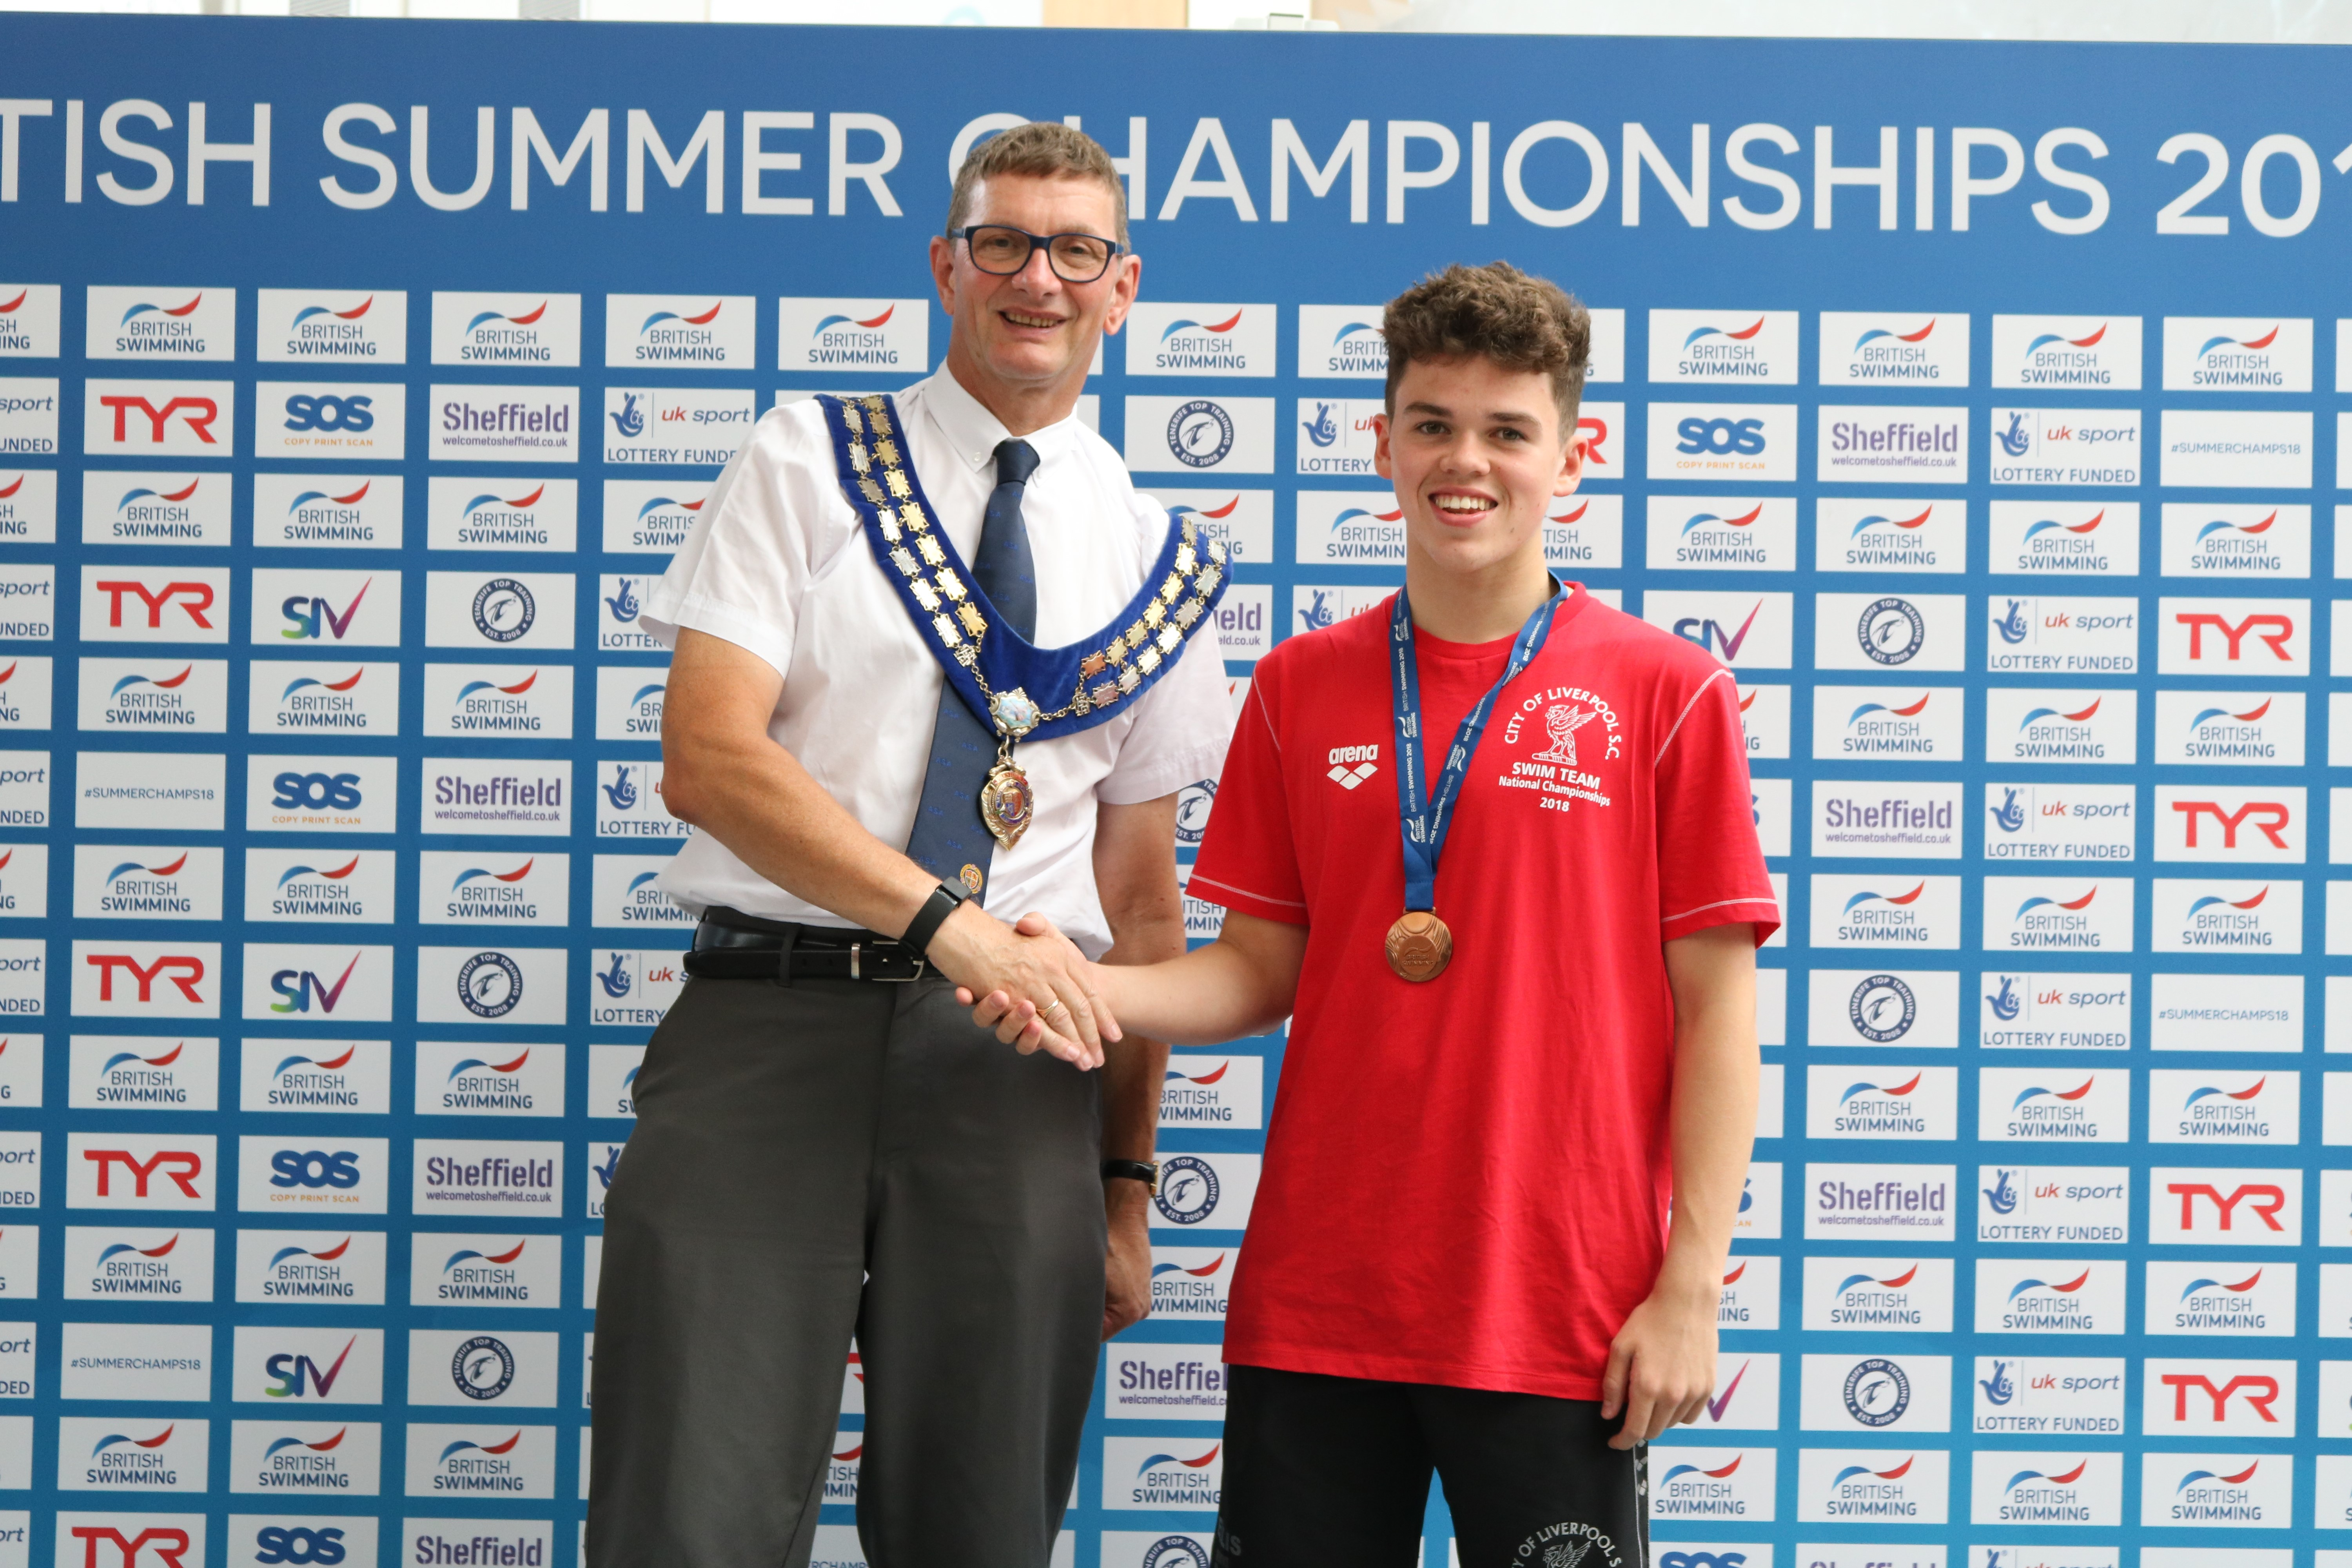 2018 British Championships - 100m Fly 13/14Yrs BRONZE Medal